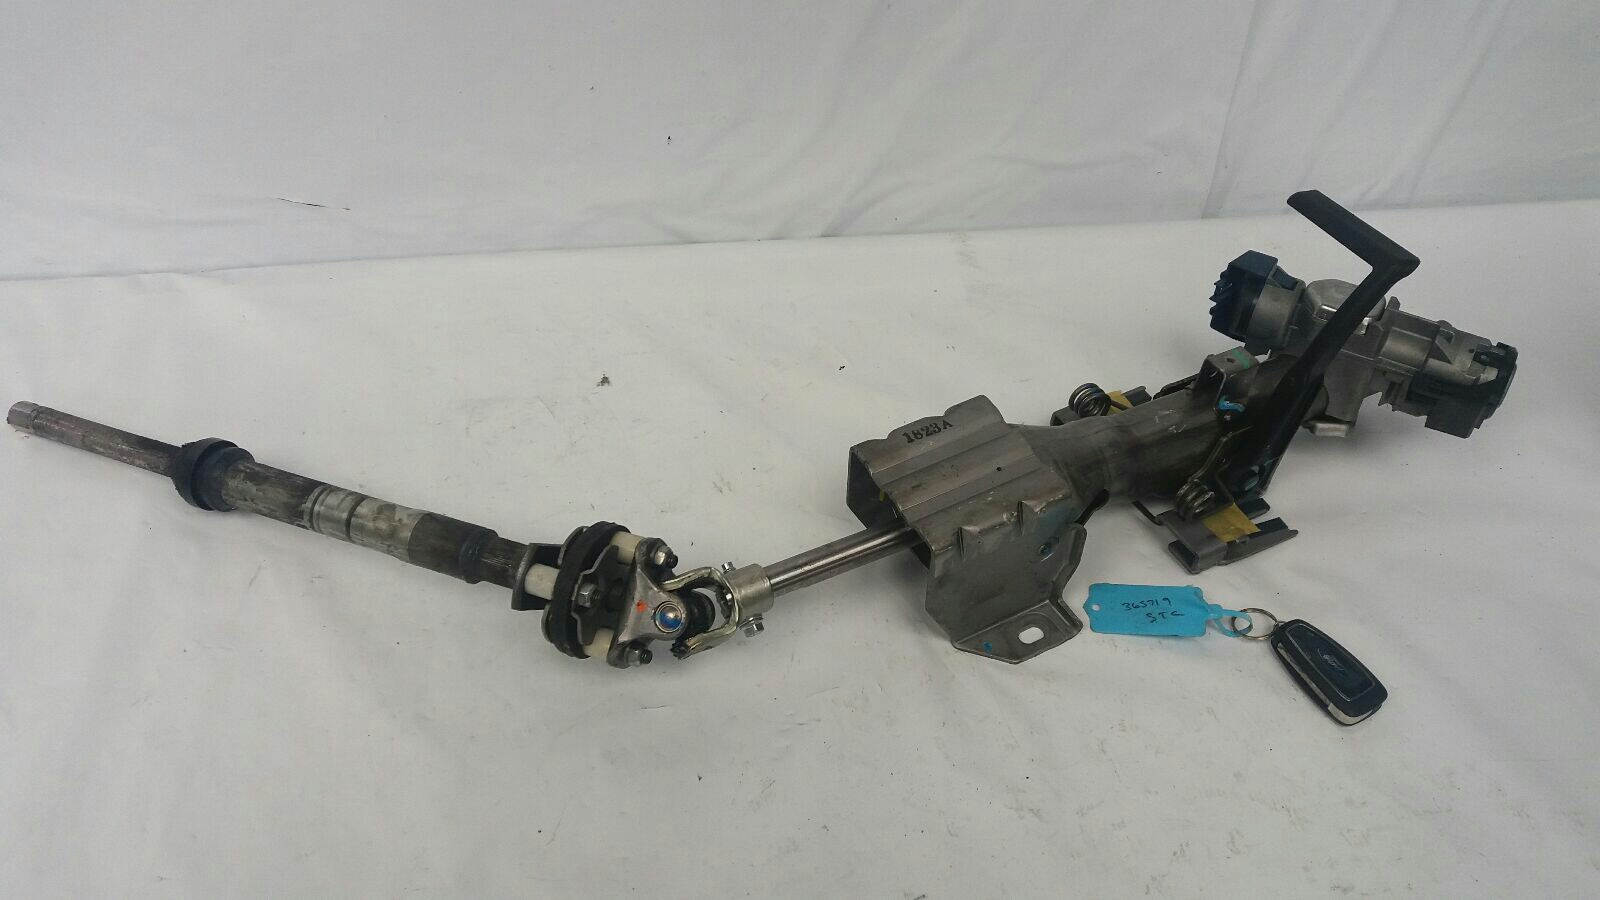 Ford Ranger 2012 To 2015 Double Cab Limited 1 4WD Steering Column